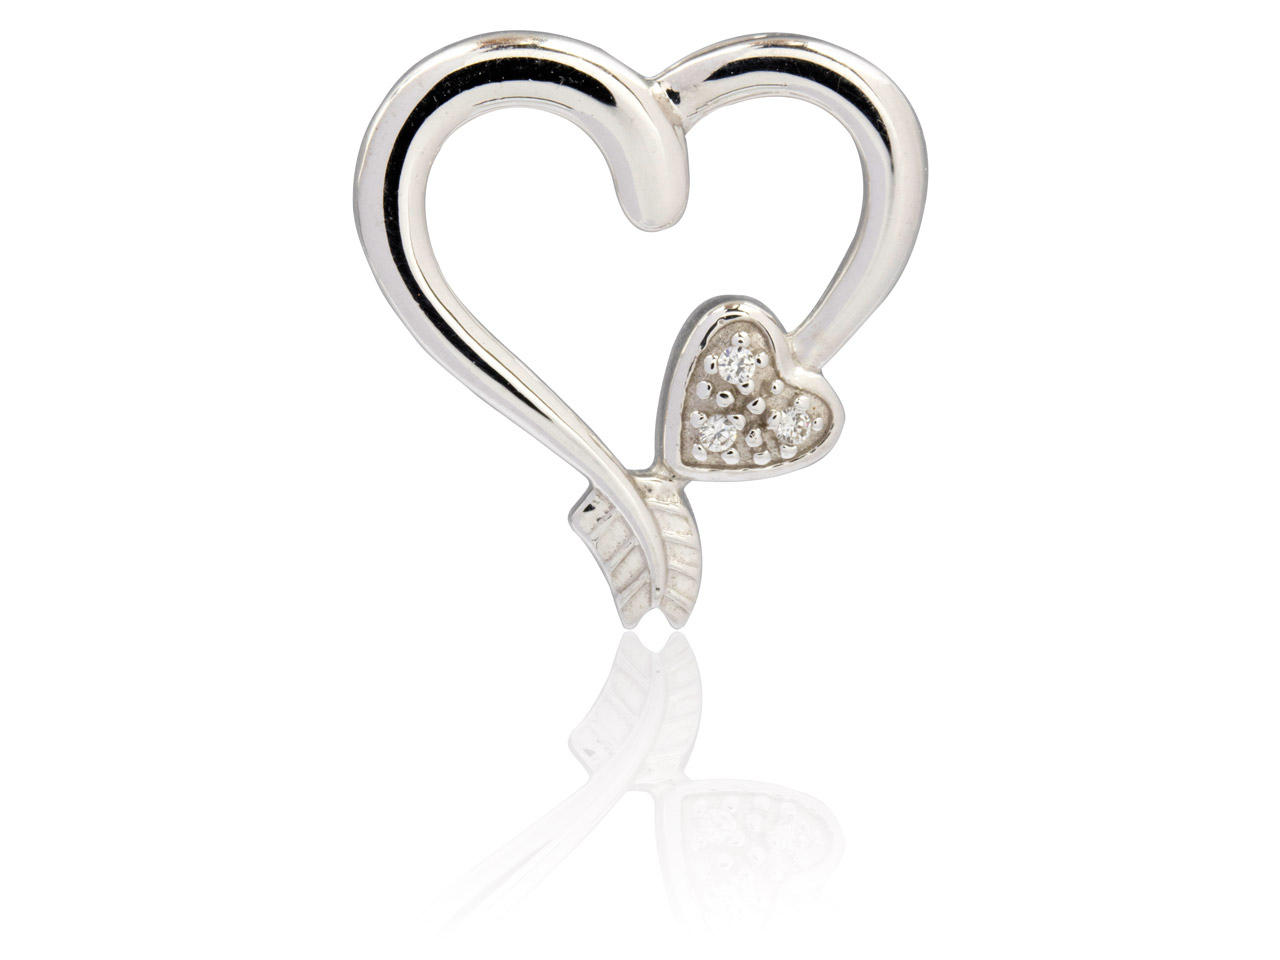 Sterling Silver Heart Pendant With Heart And Arrow Set With           Cubic Zirconia